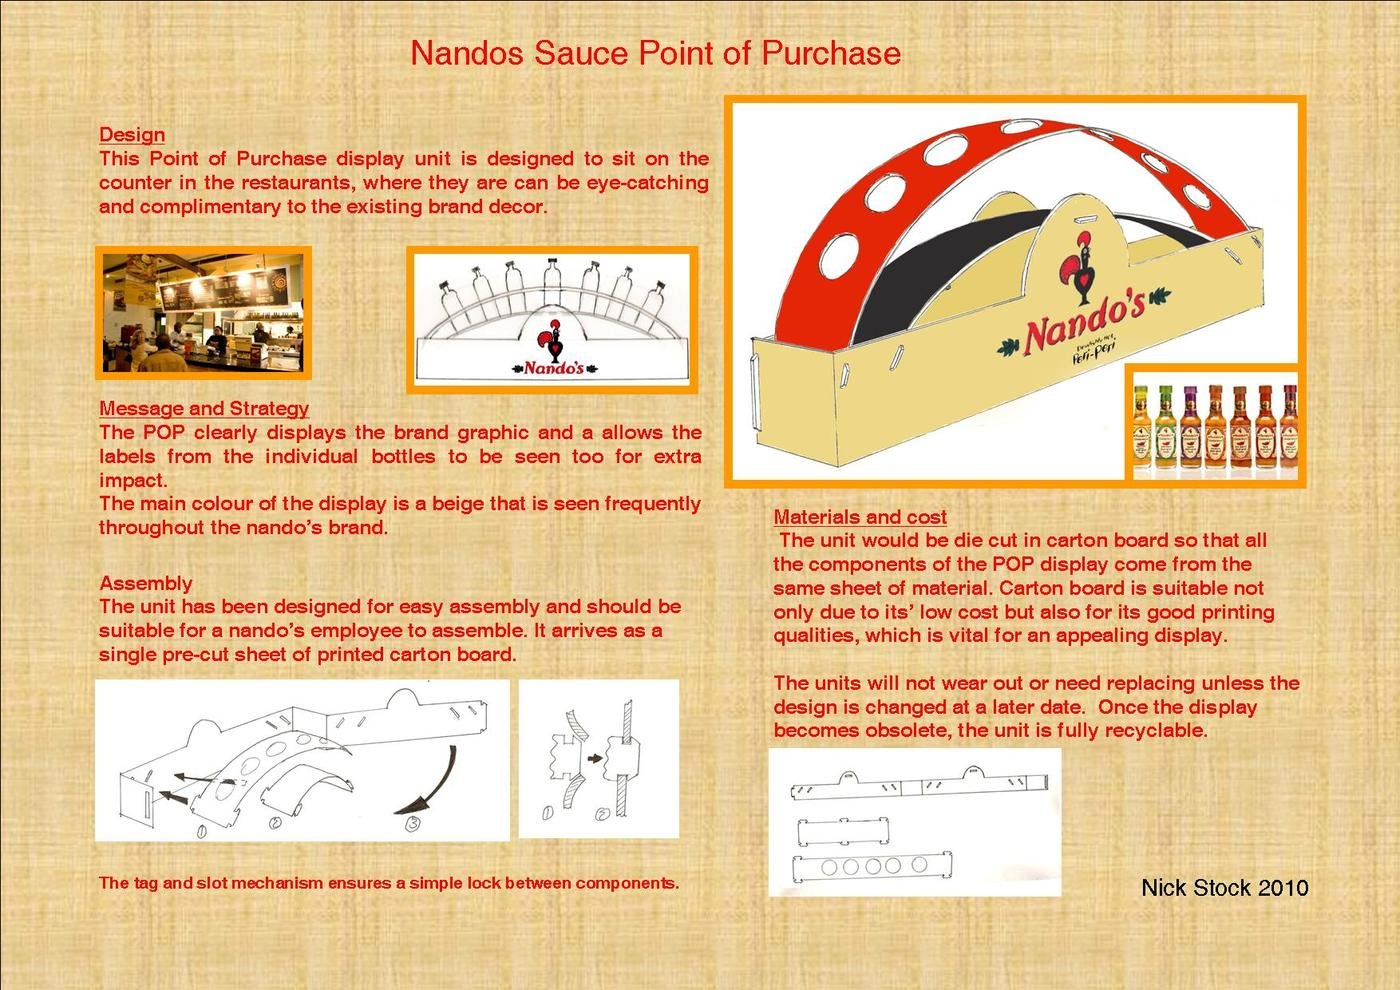 Point of Purchase for Nandos Restaurants by Nick Stock at